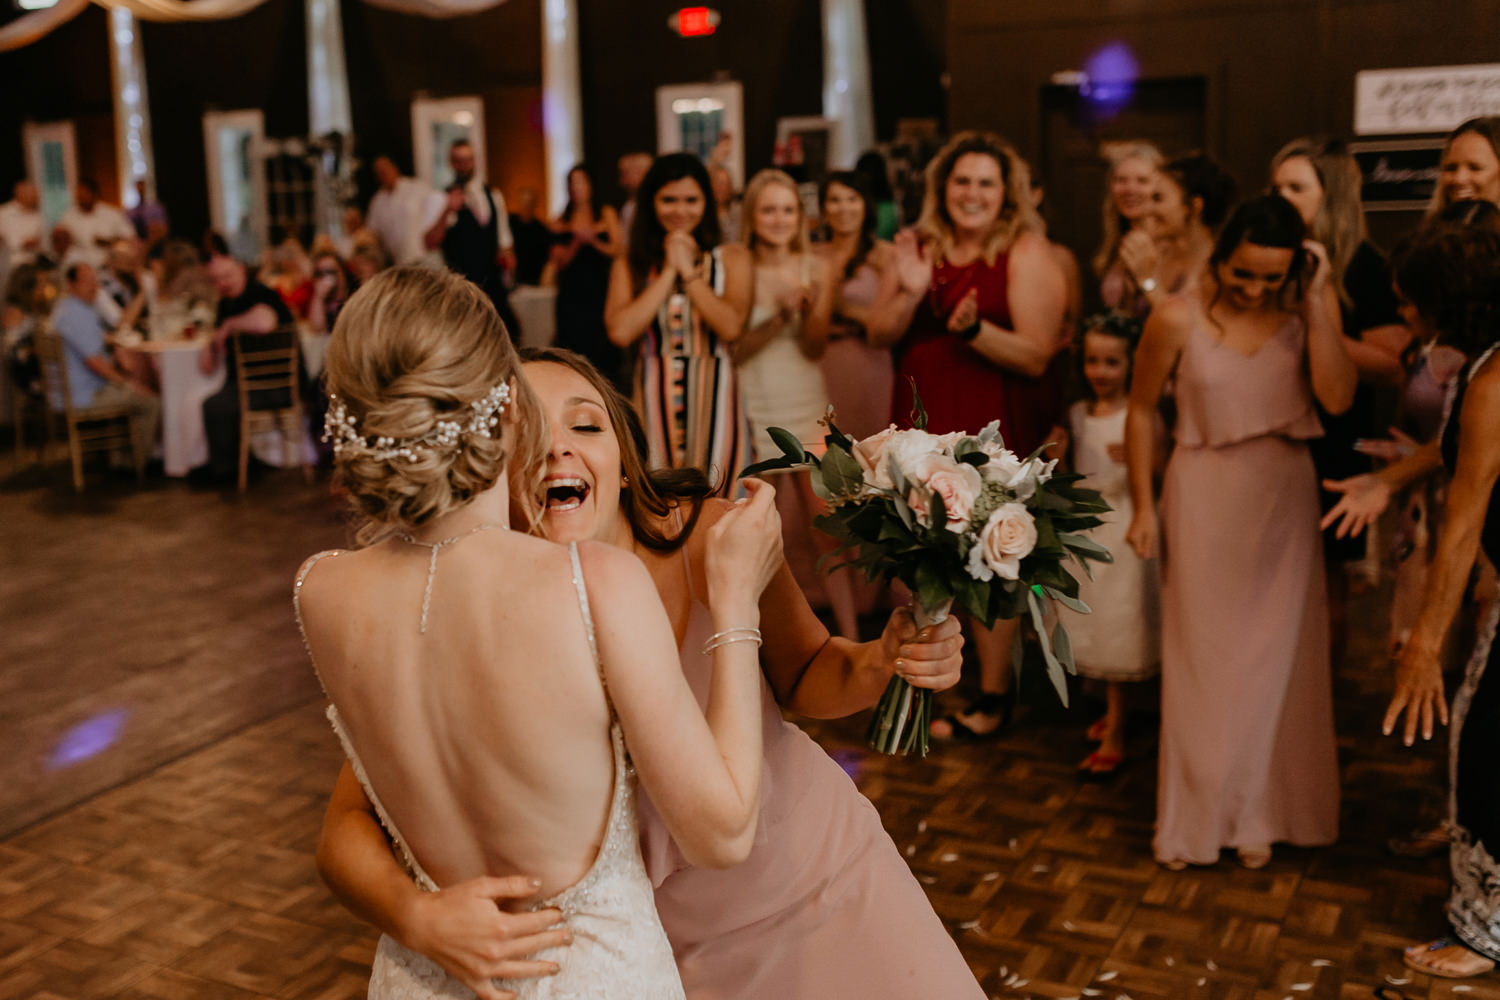 bridesmaid that caught the bouquet hugging the bride, guests applauding